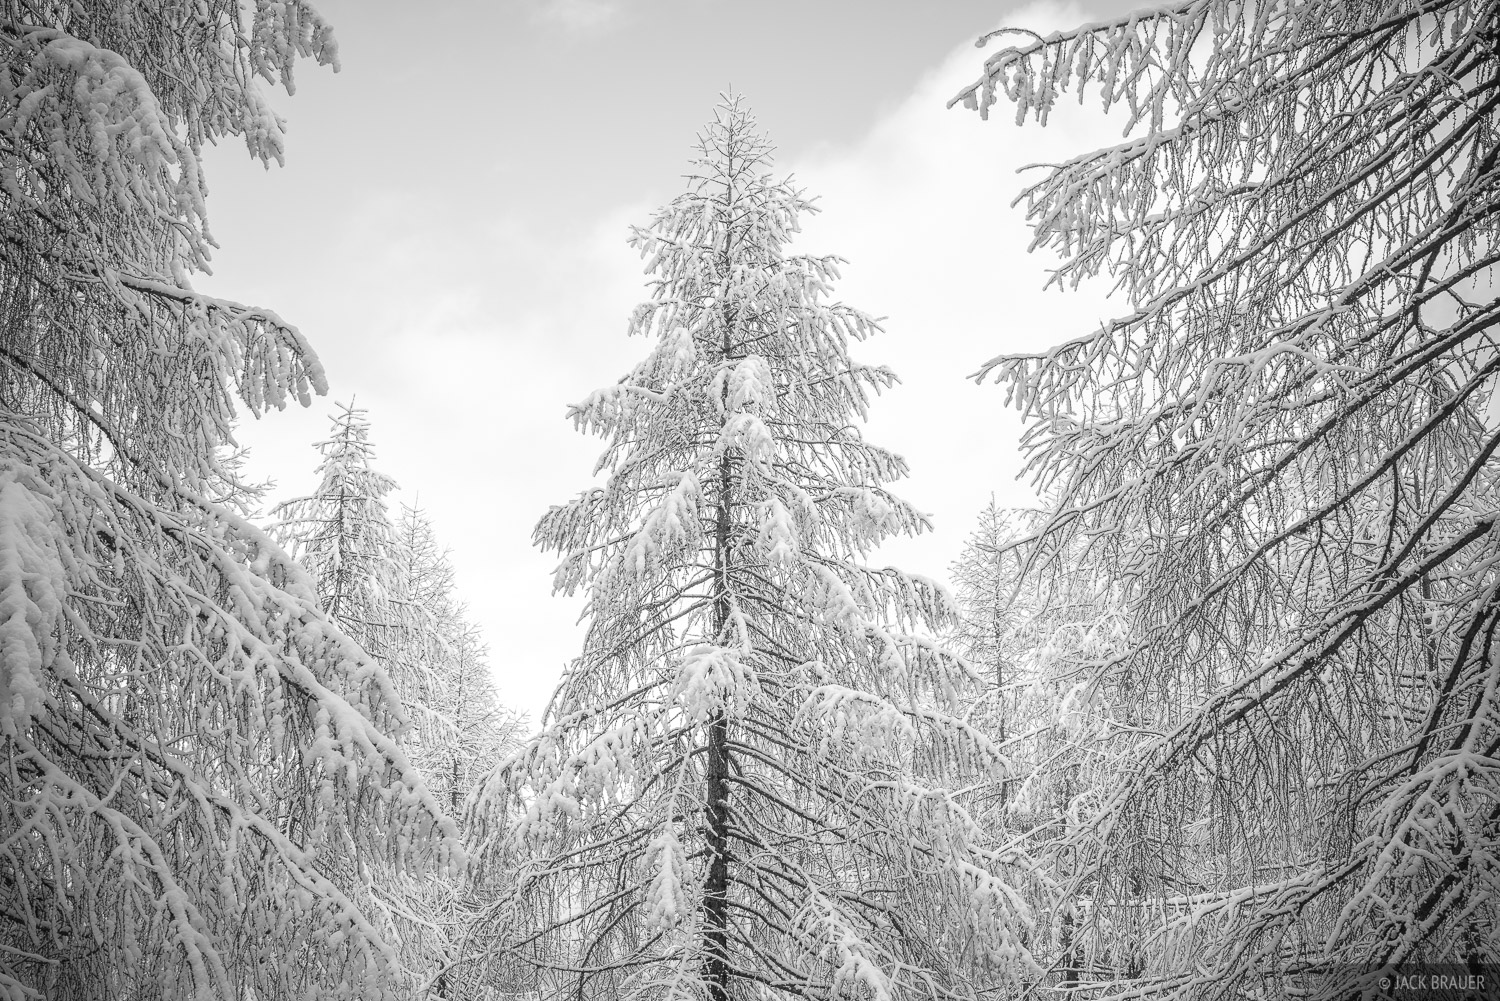 Dolomites, Italy, Parco Naturale delle Dolomiti Fruilane, bw, larch, November, Alps, photo